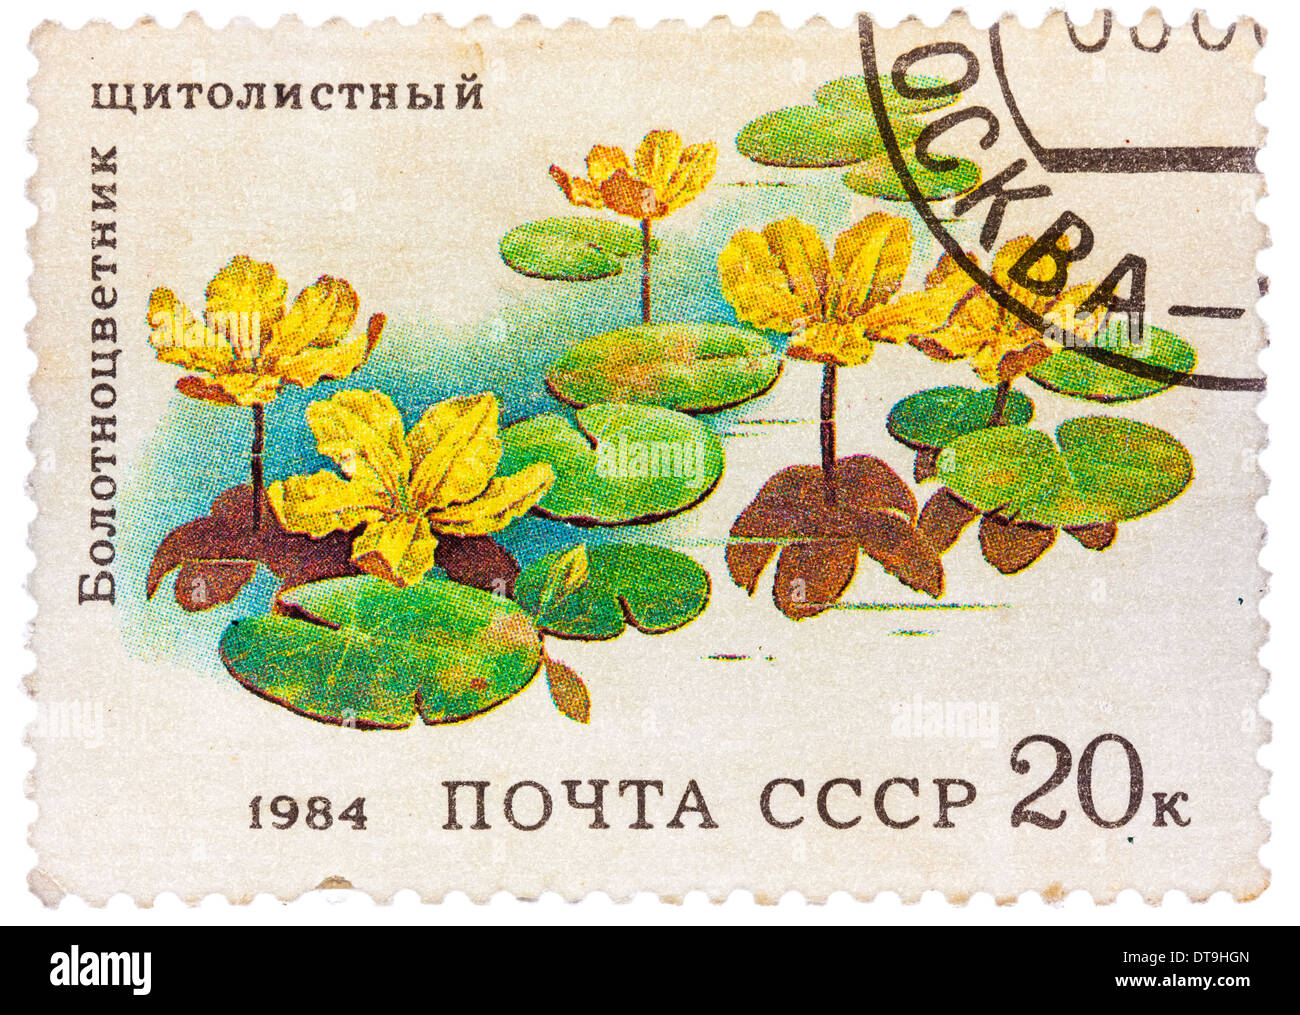 USSR - CIRCA 1984: stamp from the USSR shows image of Belotsvetnik Schitolistny, circa 1984 - Stock Image